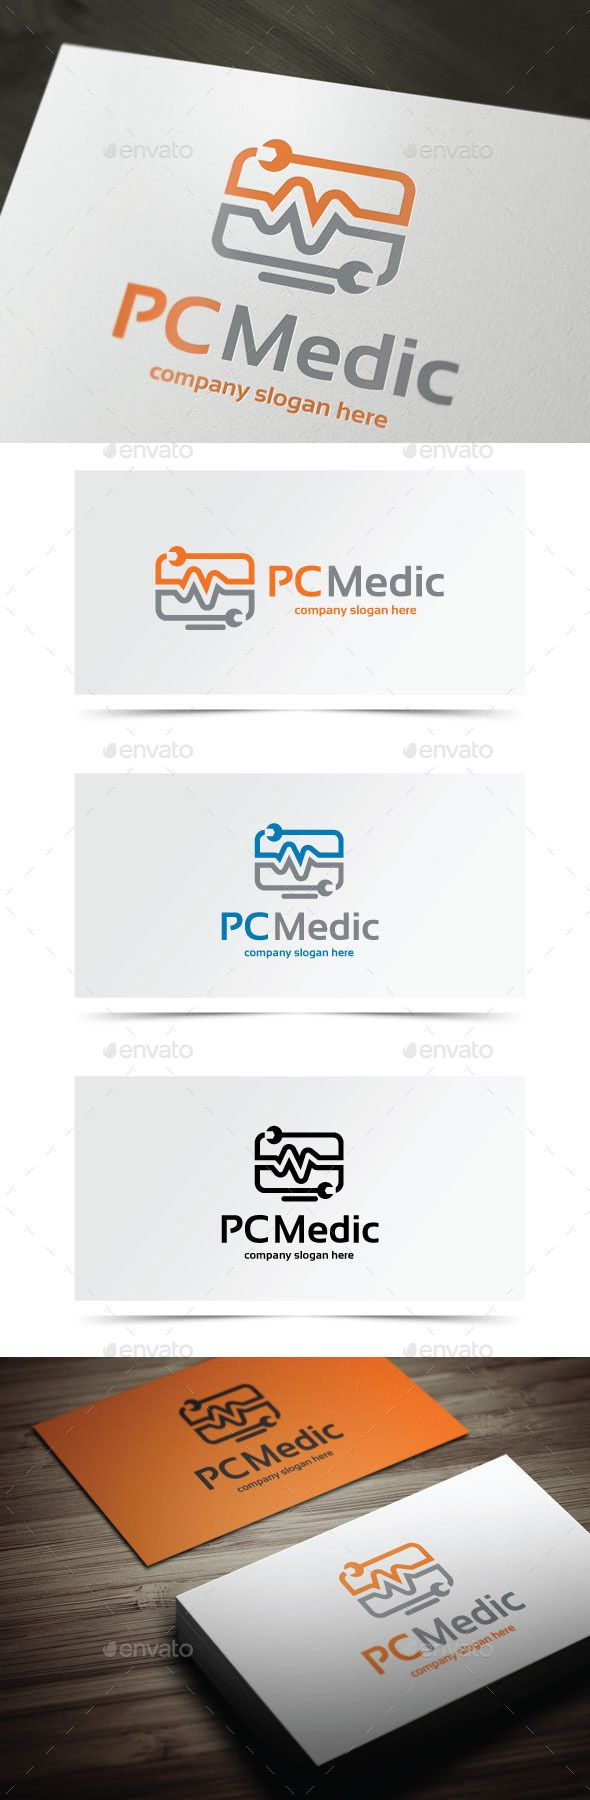 PC Medic - Objects Logo Templates